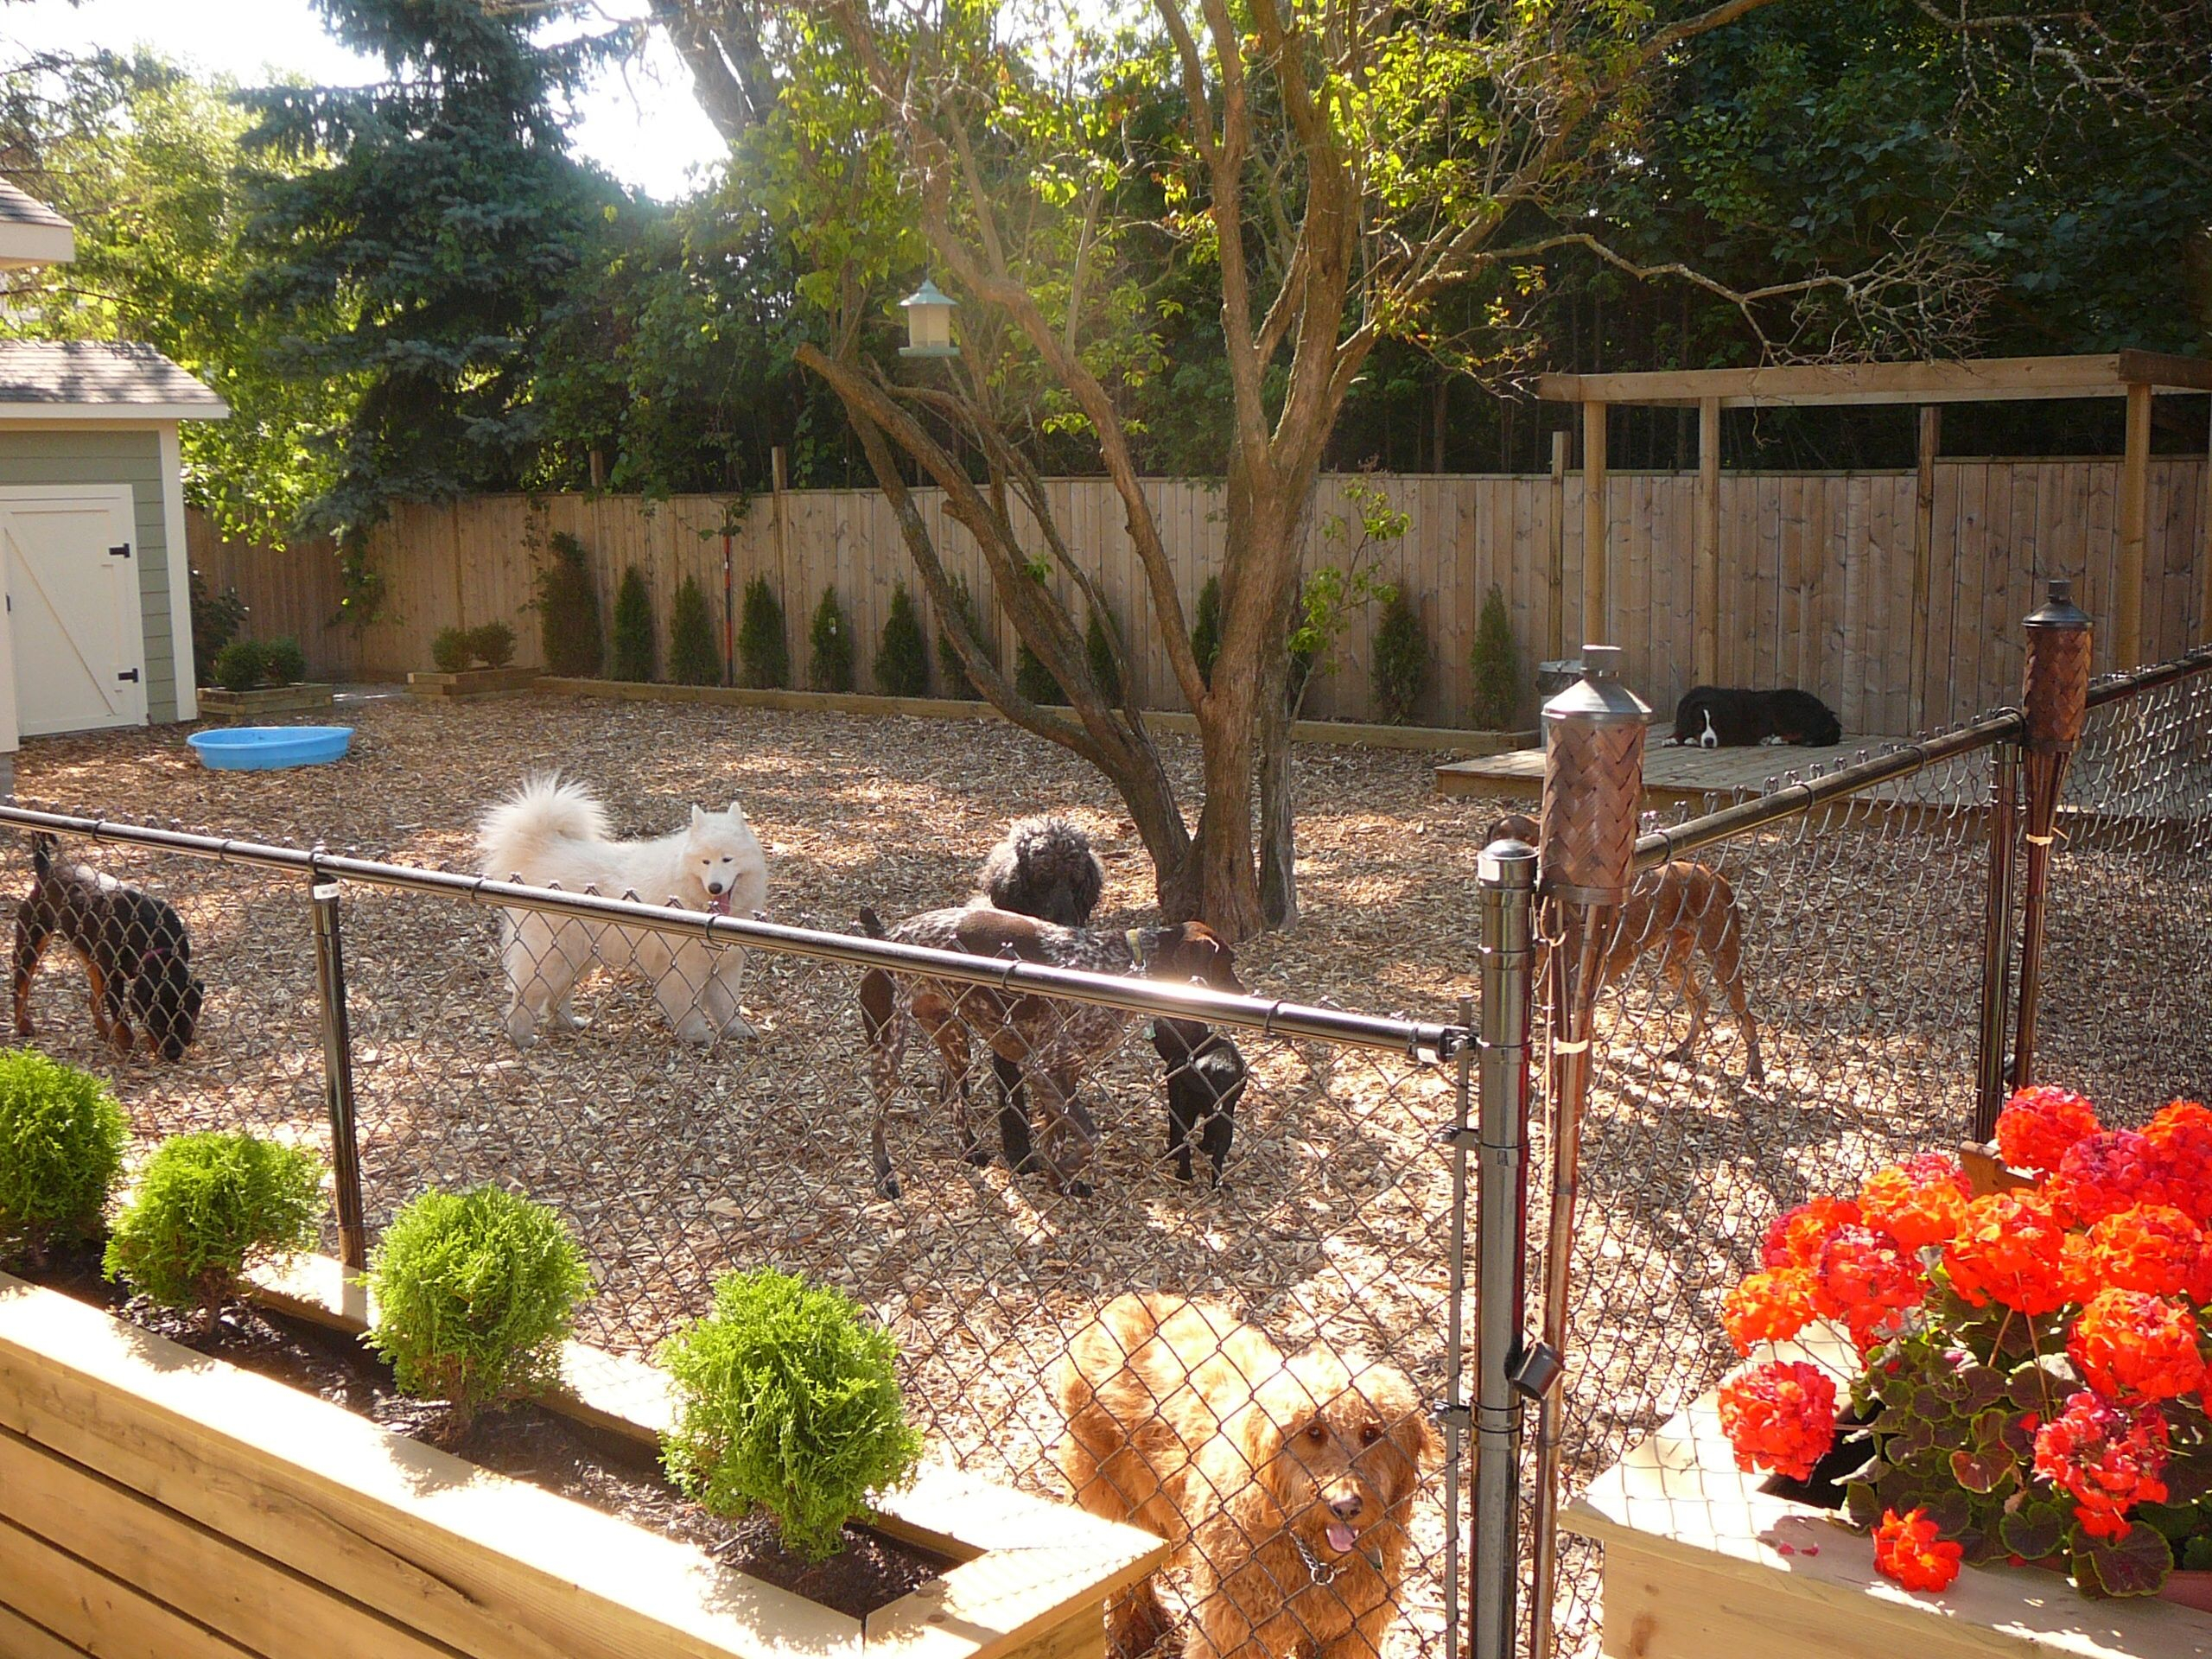 Fancy Dog Daycare Backyard Park | Pets | Pinterest | Dog Friendly Backyard inside High Quality Dog Friendly Backyard